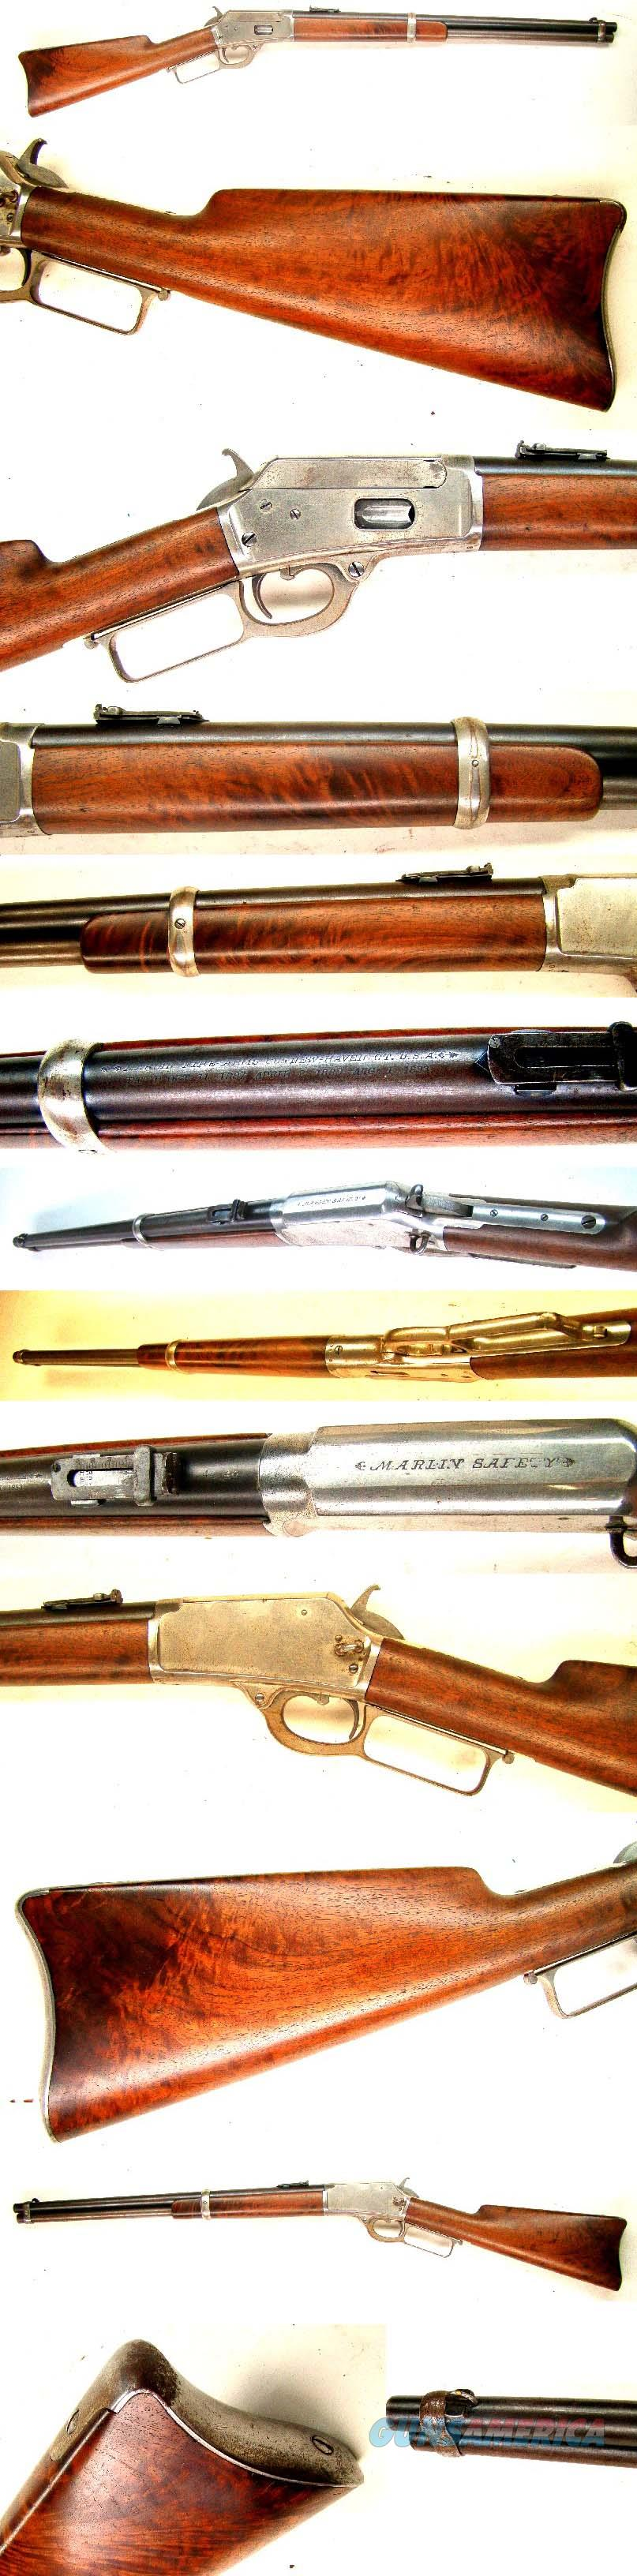 Marlin Model 1889 Carbine special order  Guns > Rifles > Winchester Rifles - Pre-1899 Lever